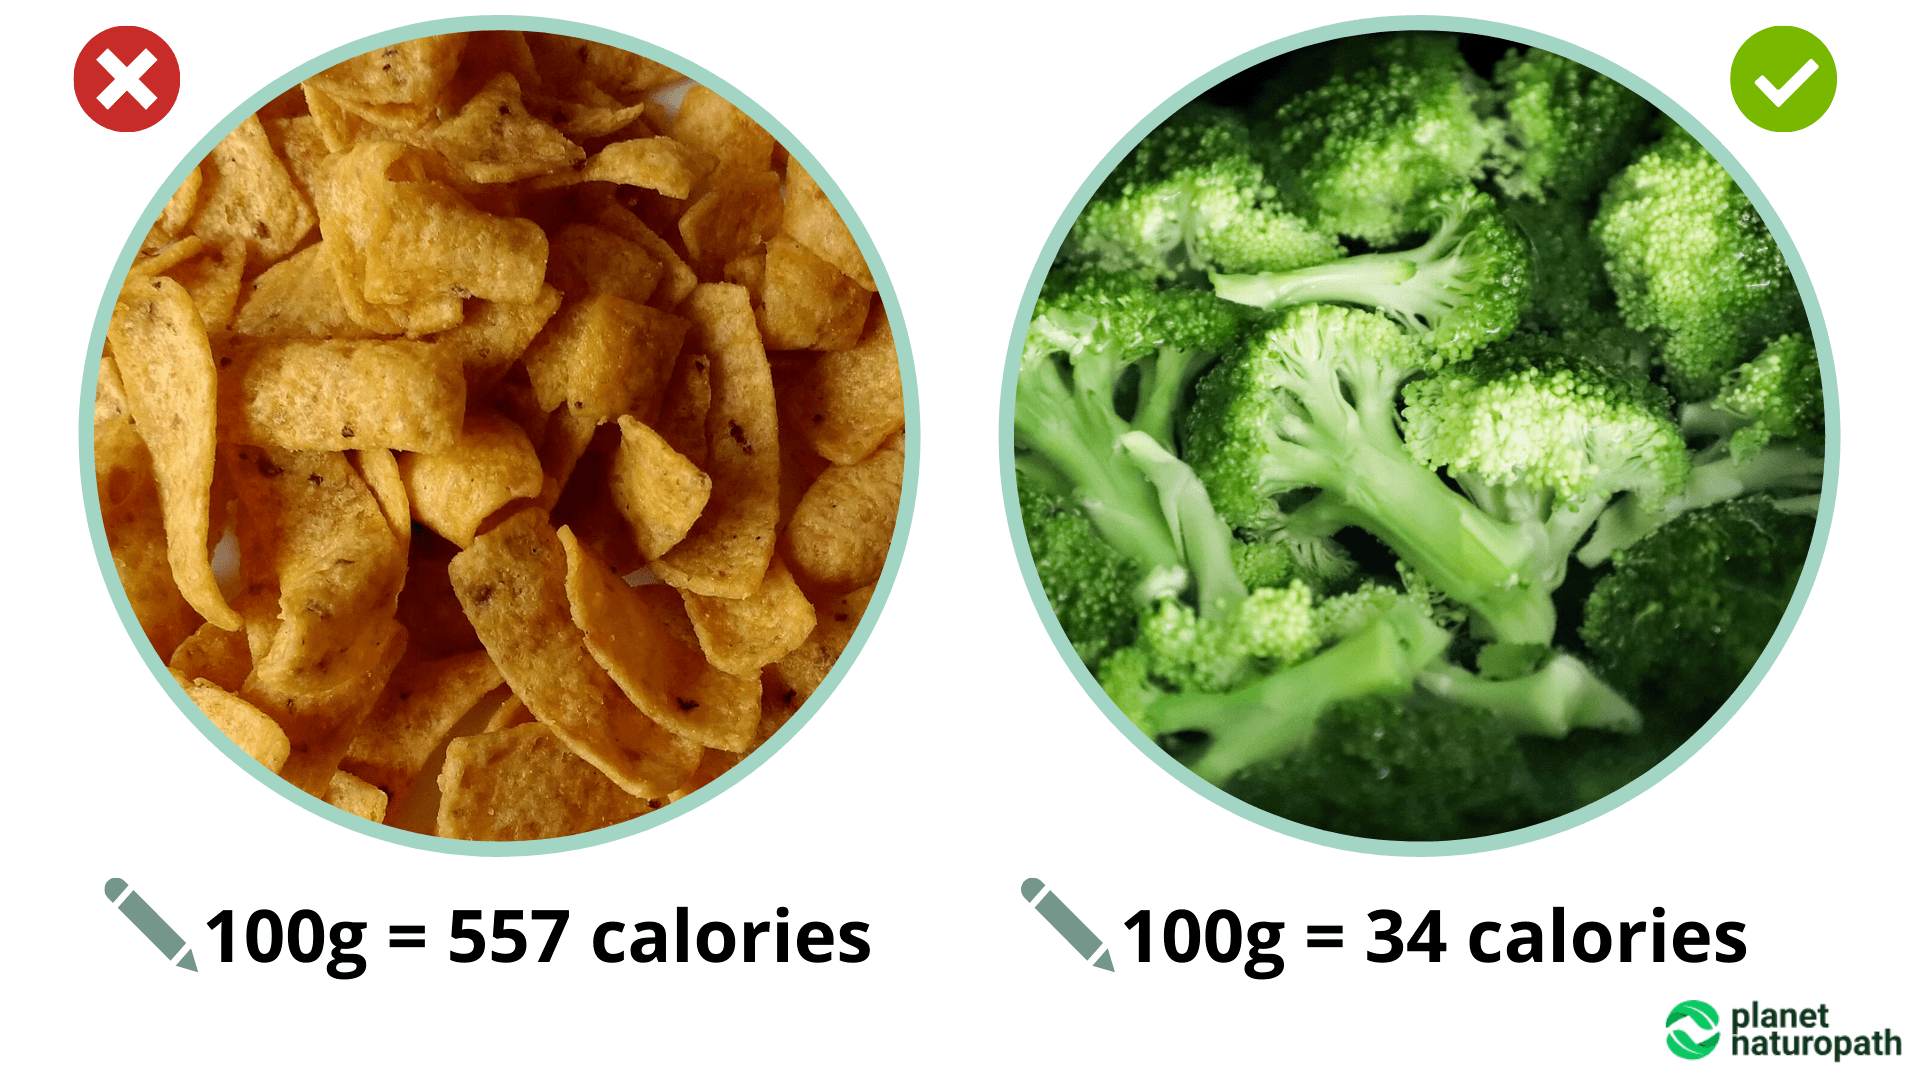 Corn-Chips-vs-Broccoli